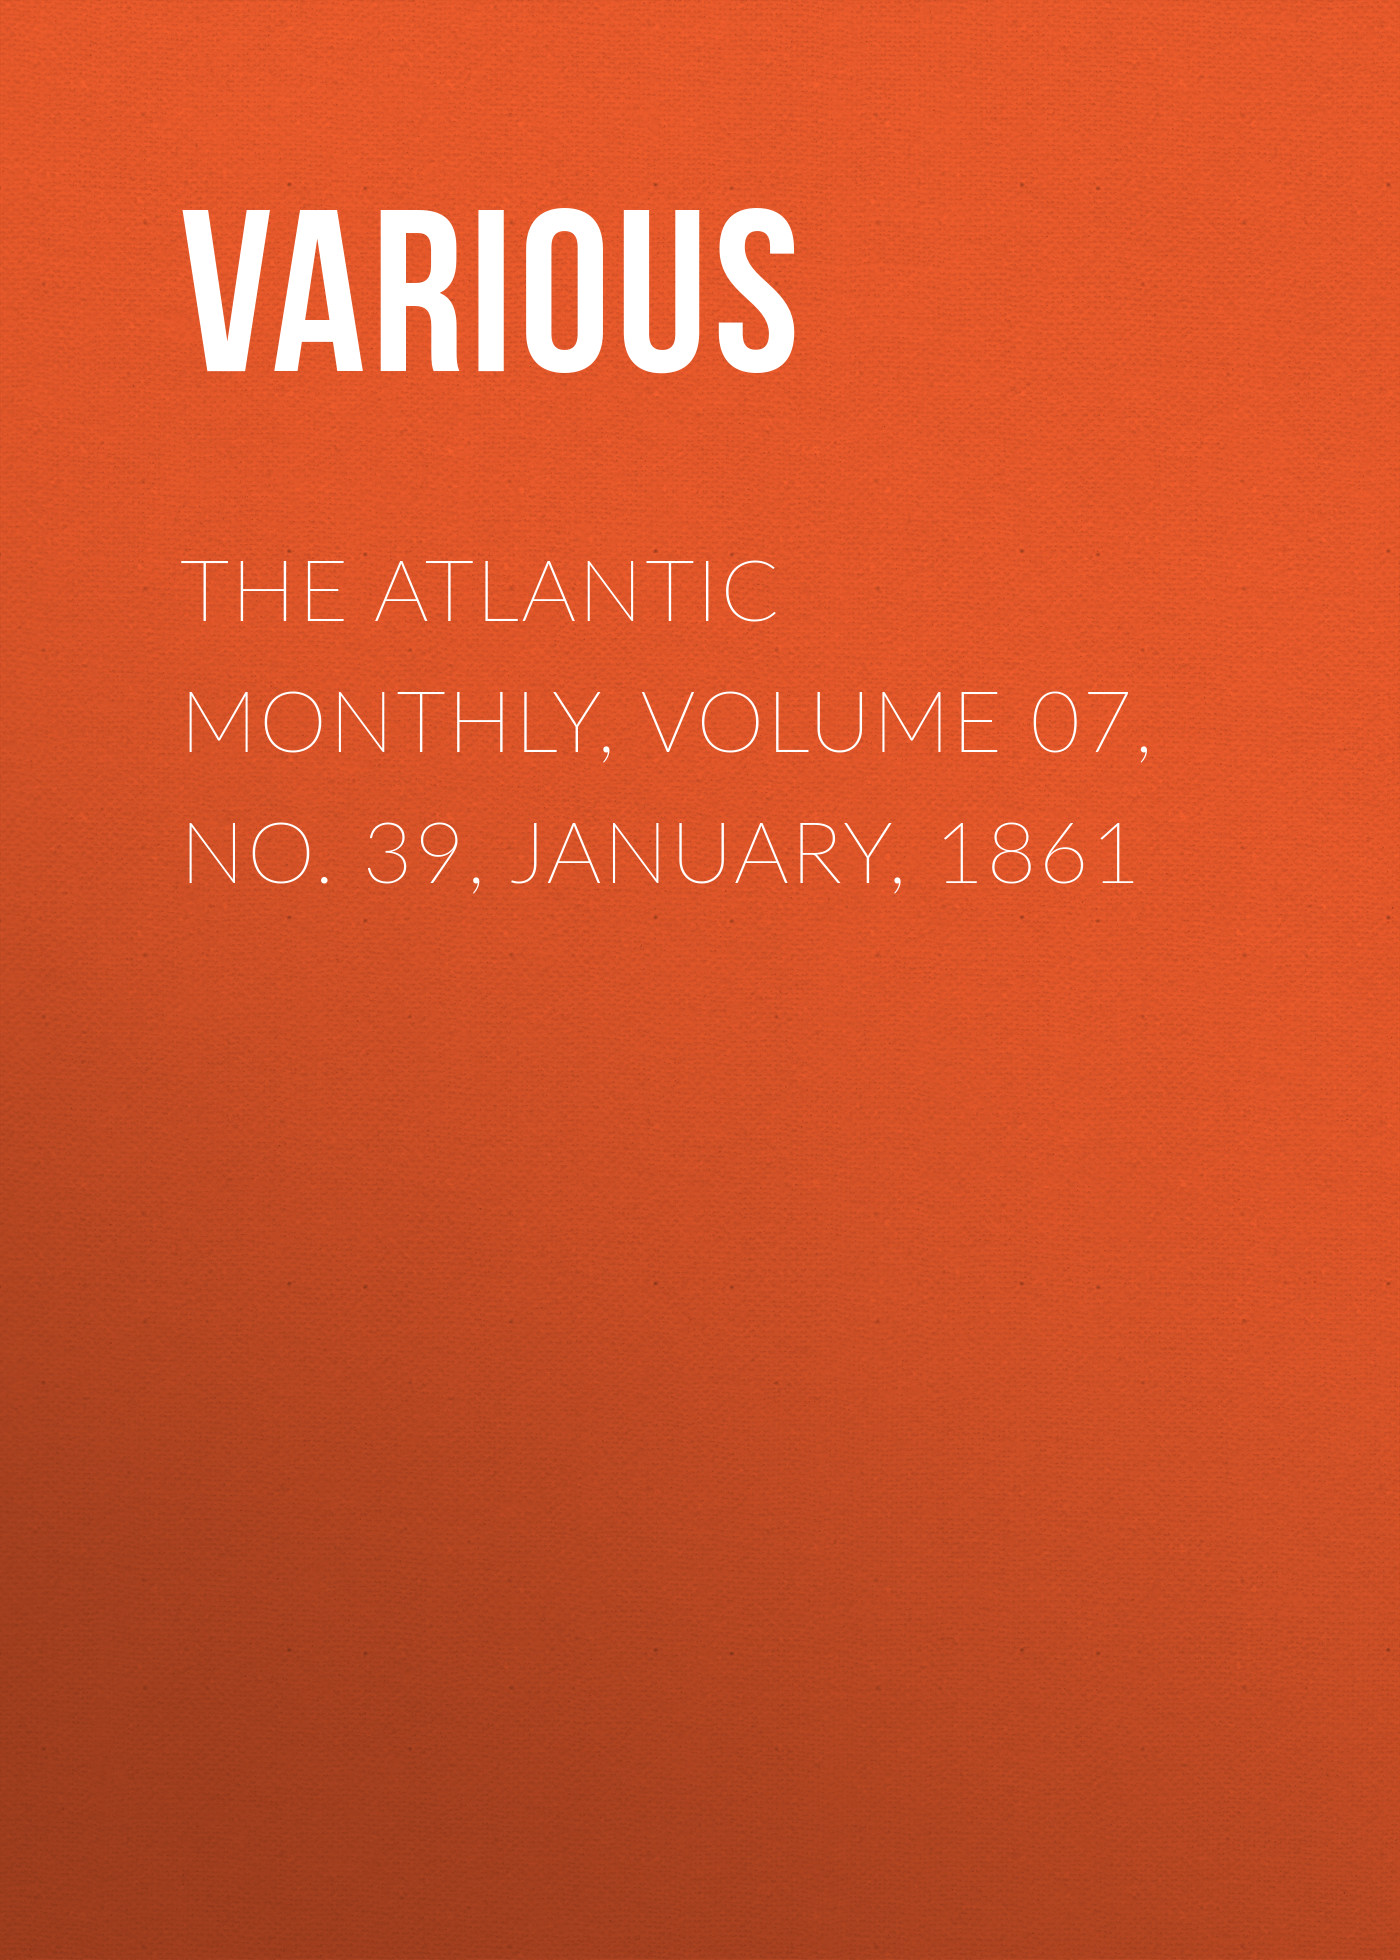 Various The Atlantic Monthly, Volume 07, No. 39, January, 1861 various the atlantic monthly volume 11 no 63 january 1863